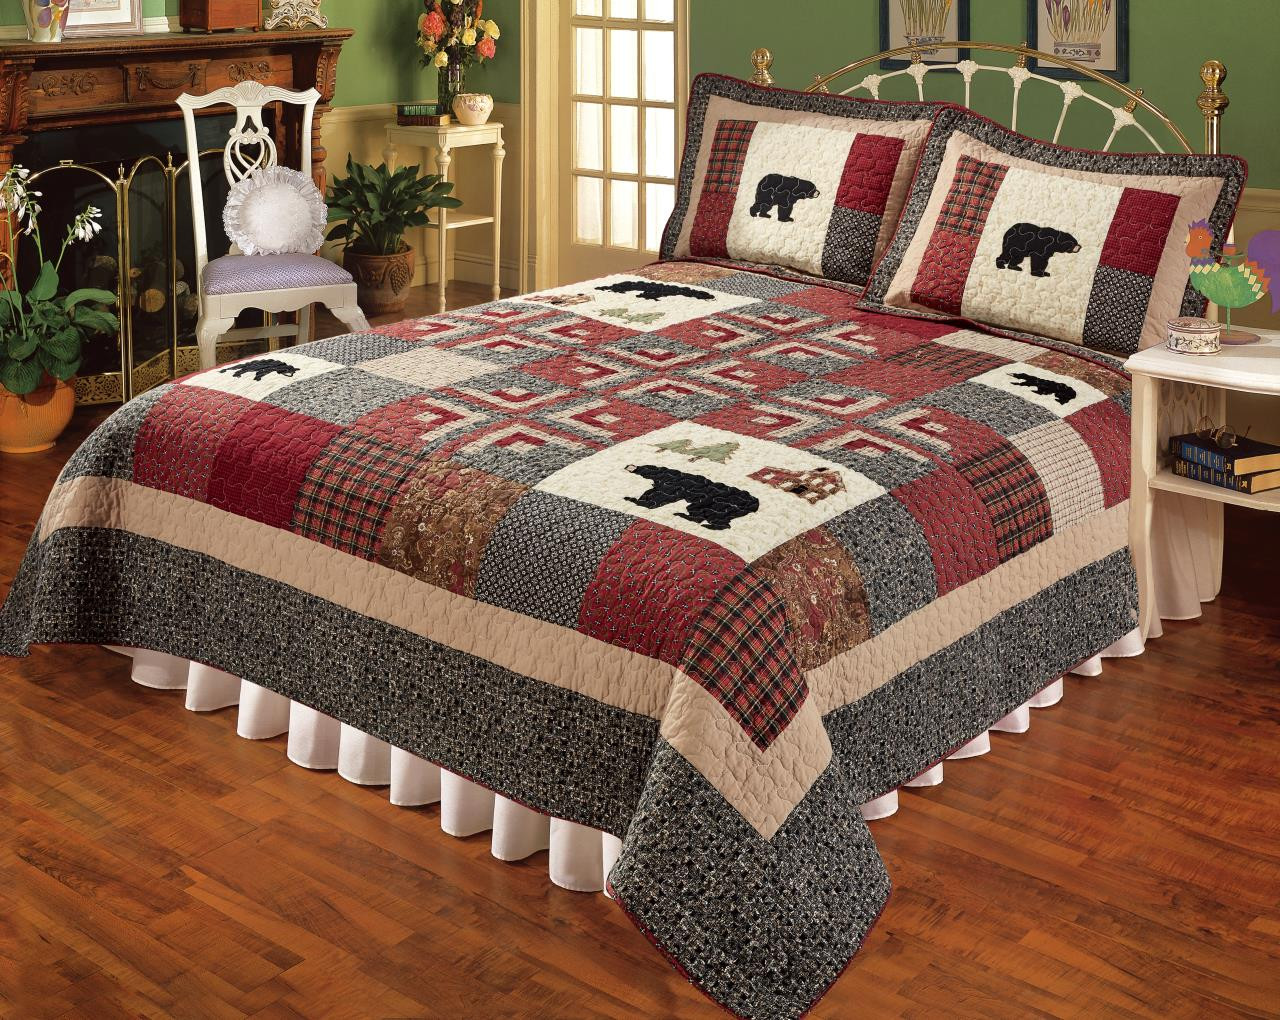 Cabin Fever Quilt Collection -